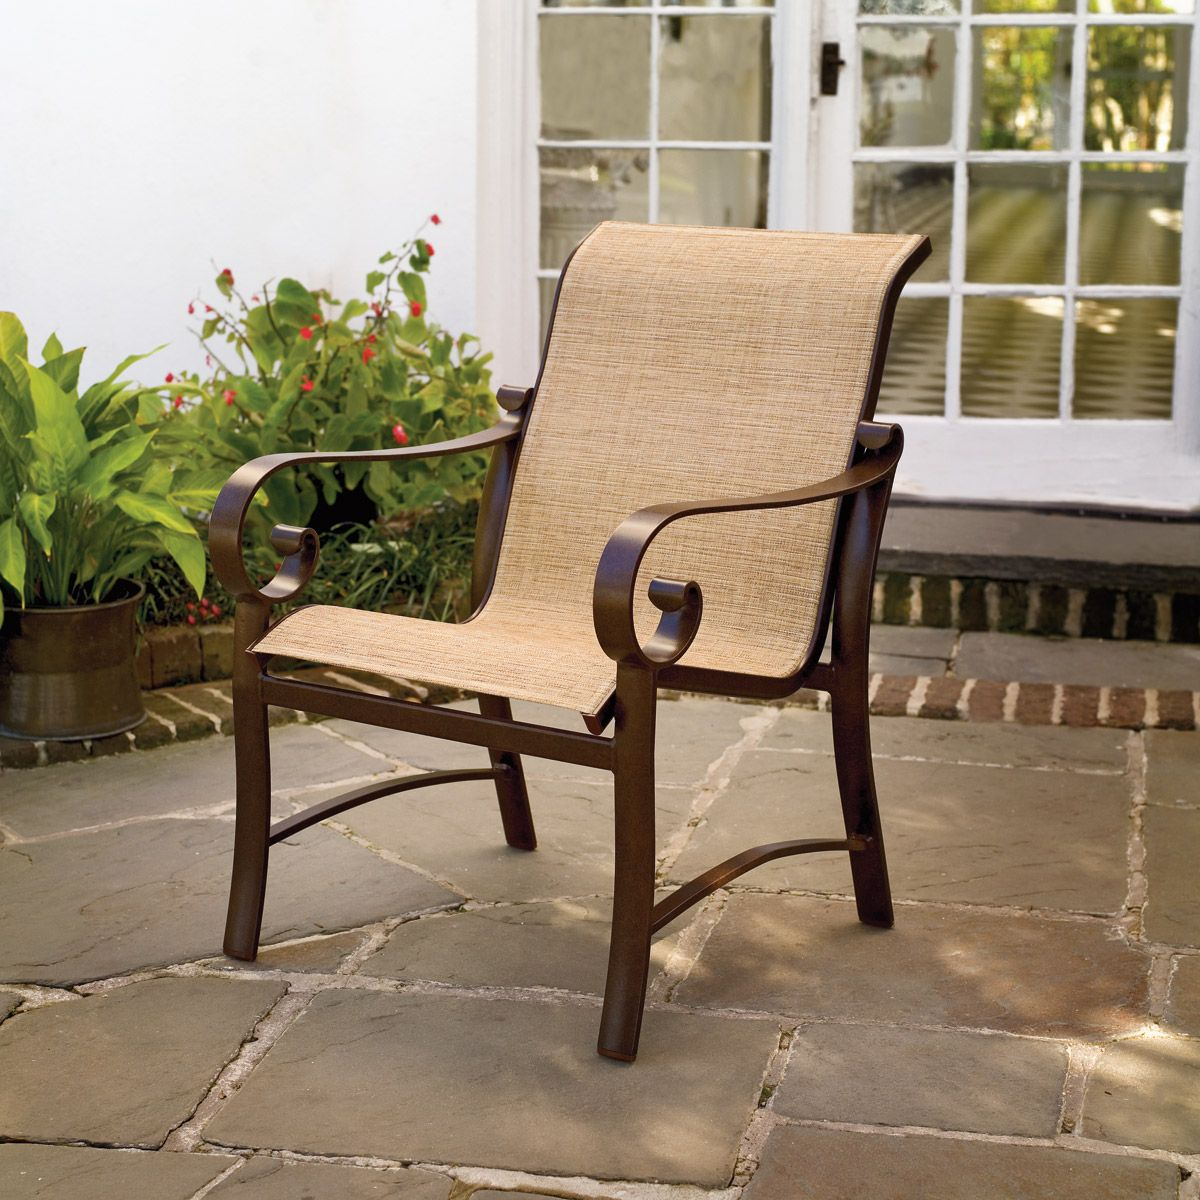 How to Paint Outdoor Sling Chairs I Upcycle, Patios and